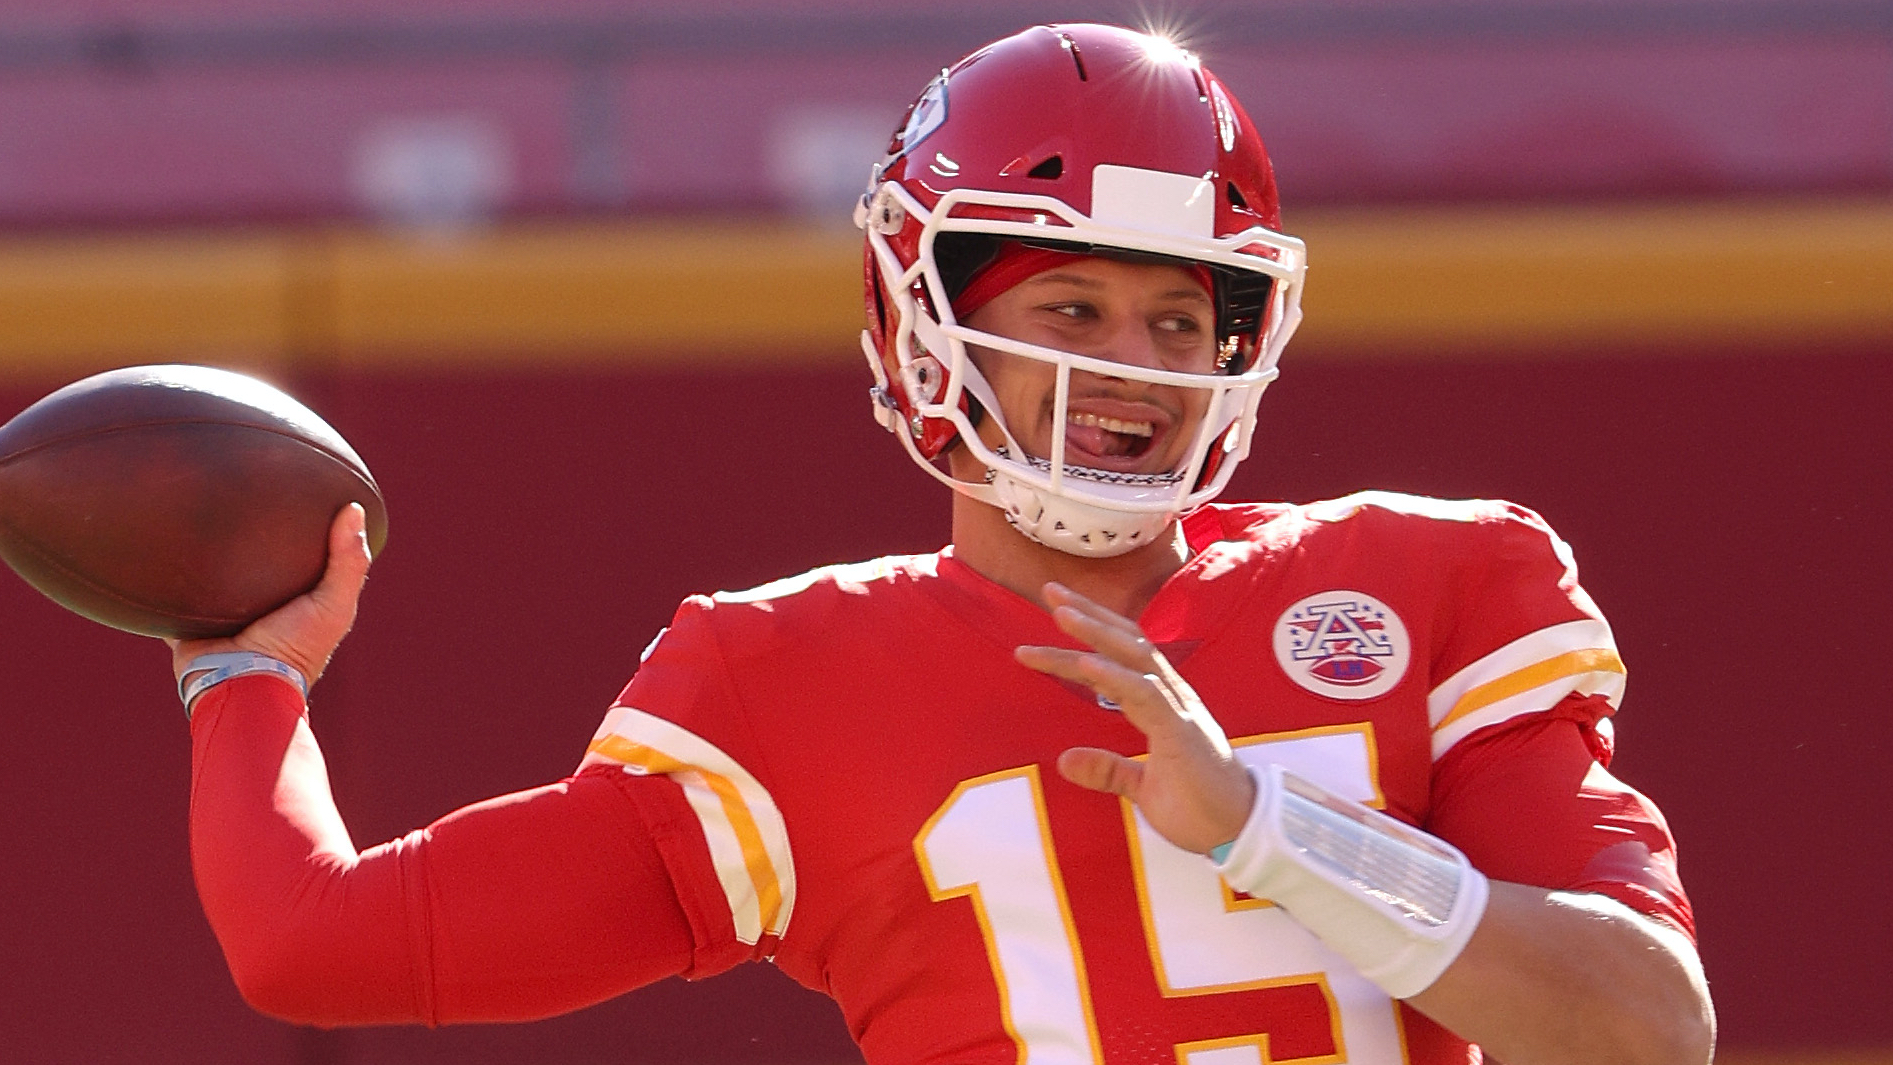 updated-bills-vs-chiefs-odds-patrick-mahomes-injury-afc-championship-game-spread